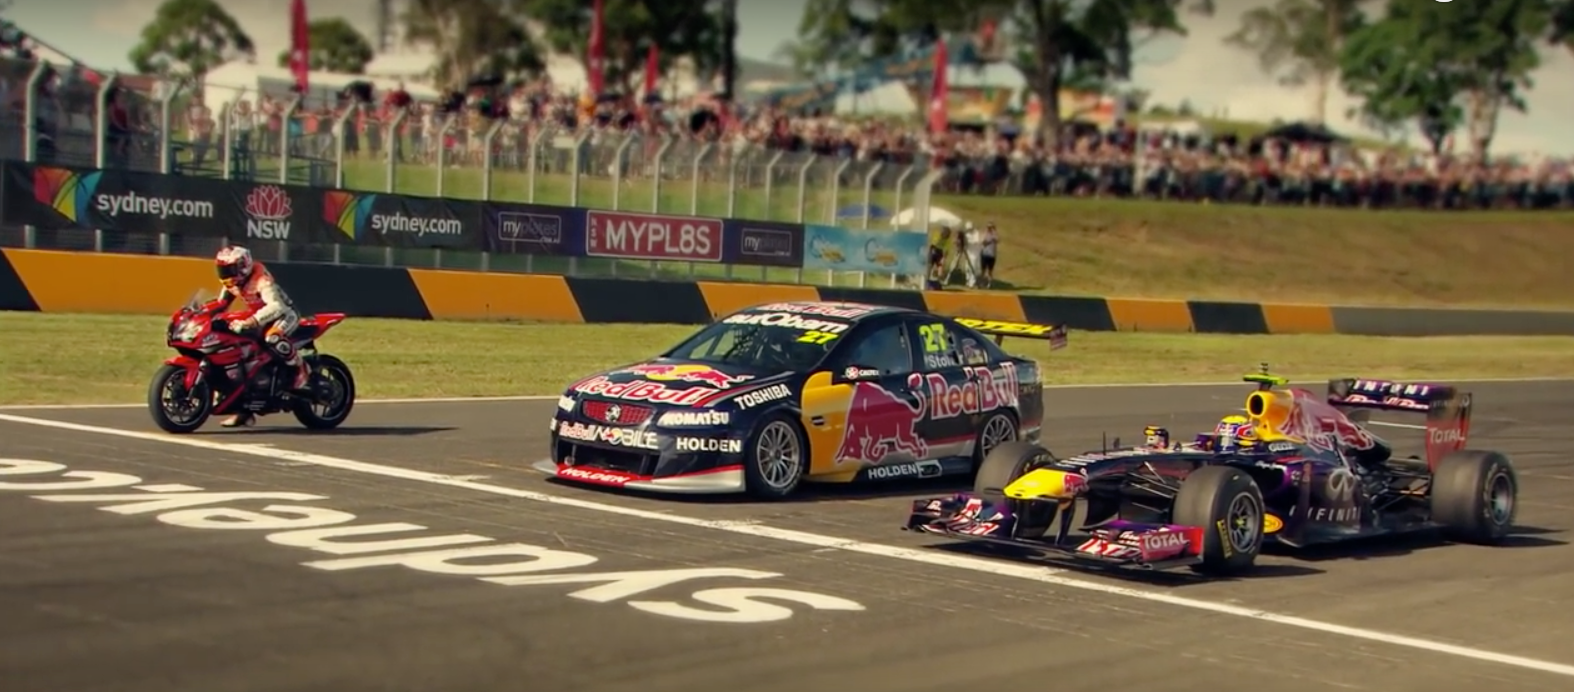 One of TopGear's many tests showcases some of the differences between various race cars that are likely to have completely different suspension frequencies. The Touring car in the middle likely has a 3.0-3.5Hz suspension frequency with it's simple aero package and race tires, while the F1 car will have a frequency in excess of 5.0Hz, as its downforce produced and ultimate grip level is far greater. The bike will run off the same principles as a car's suspension.